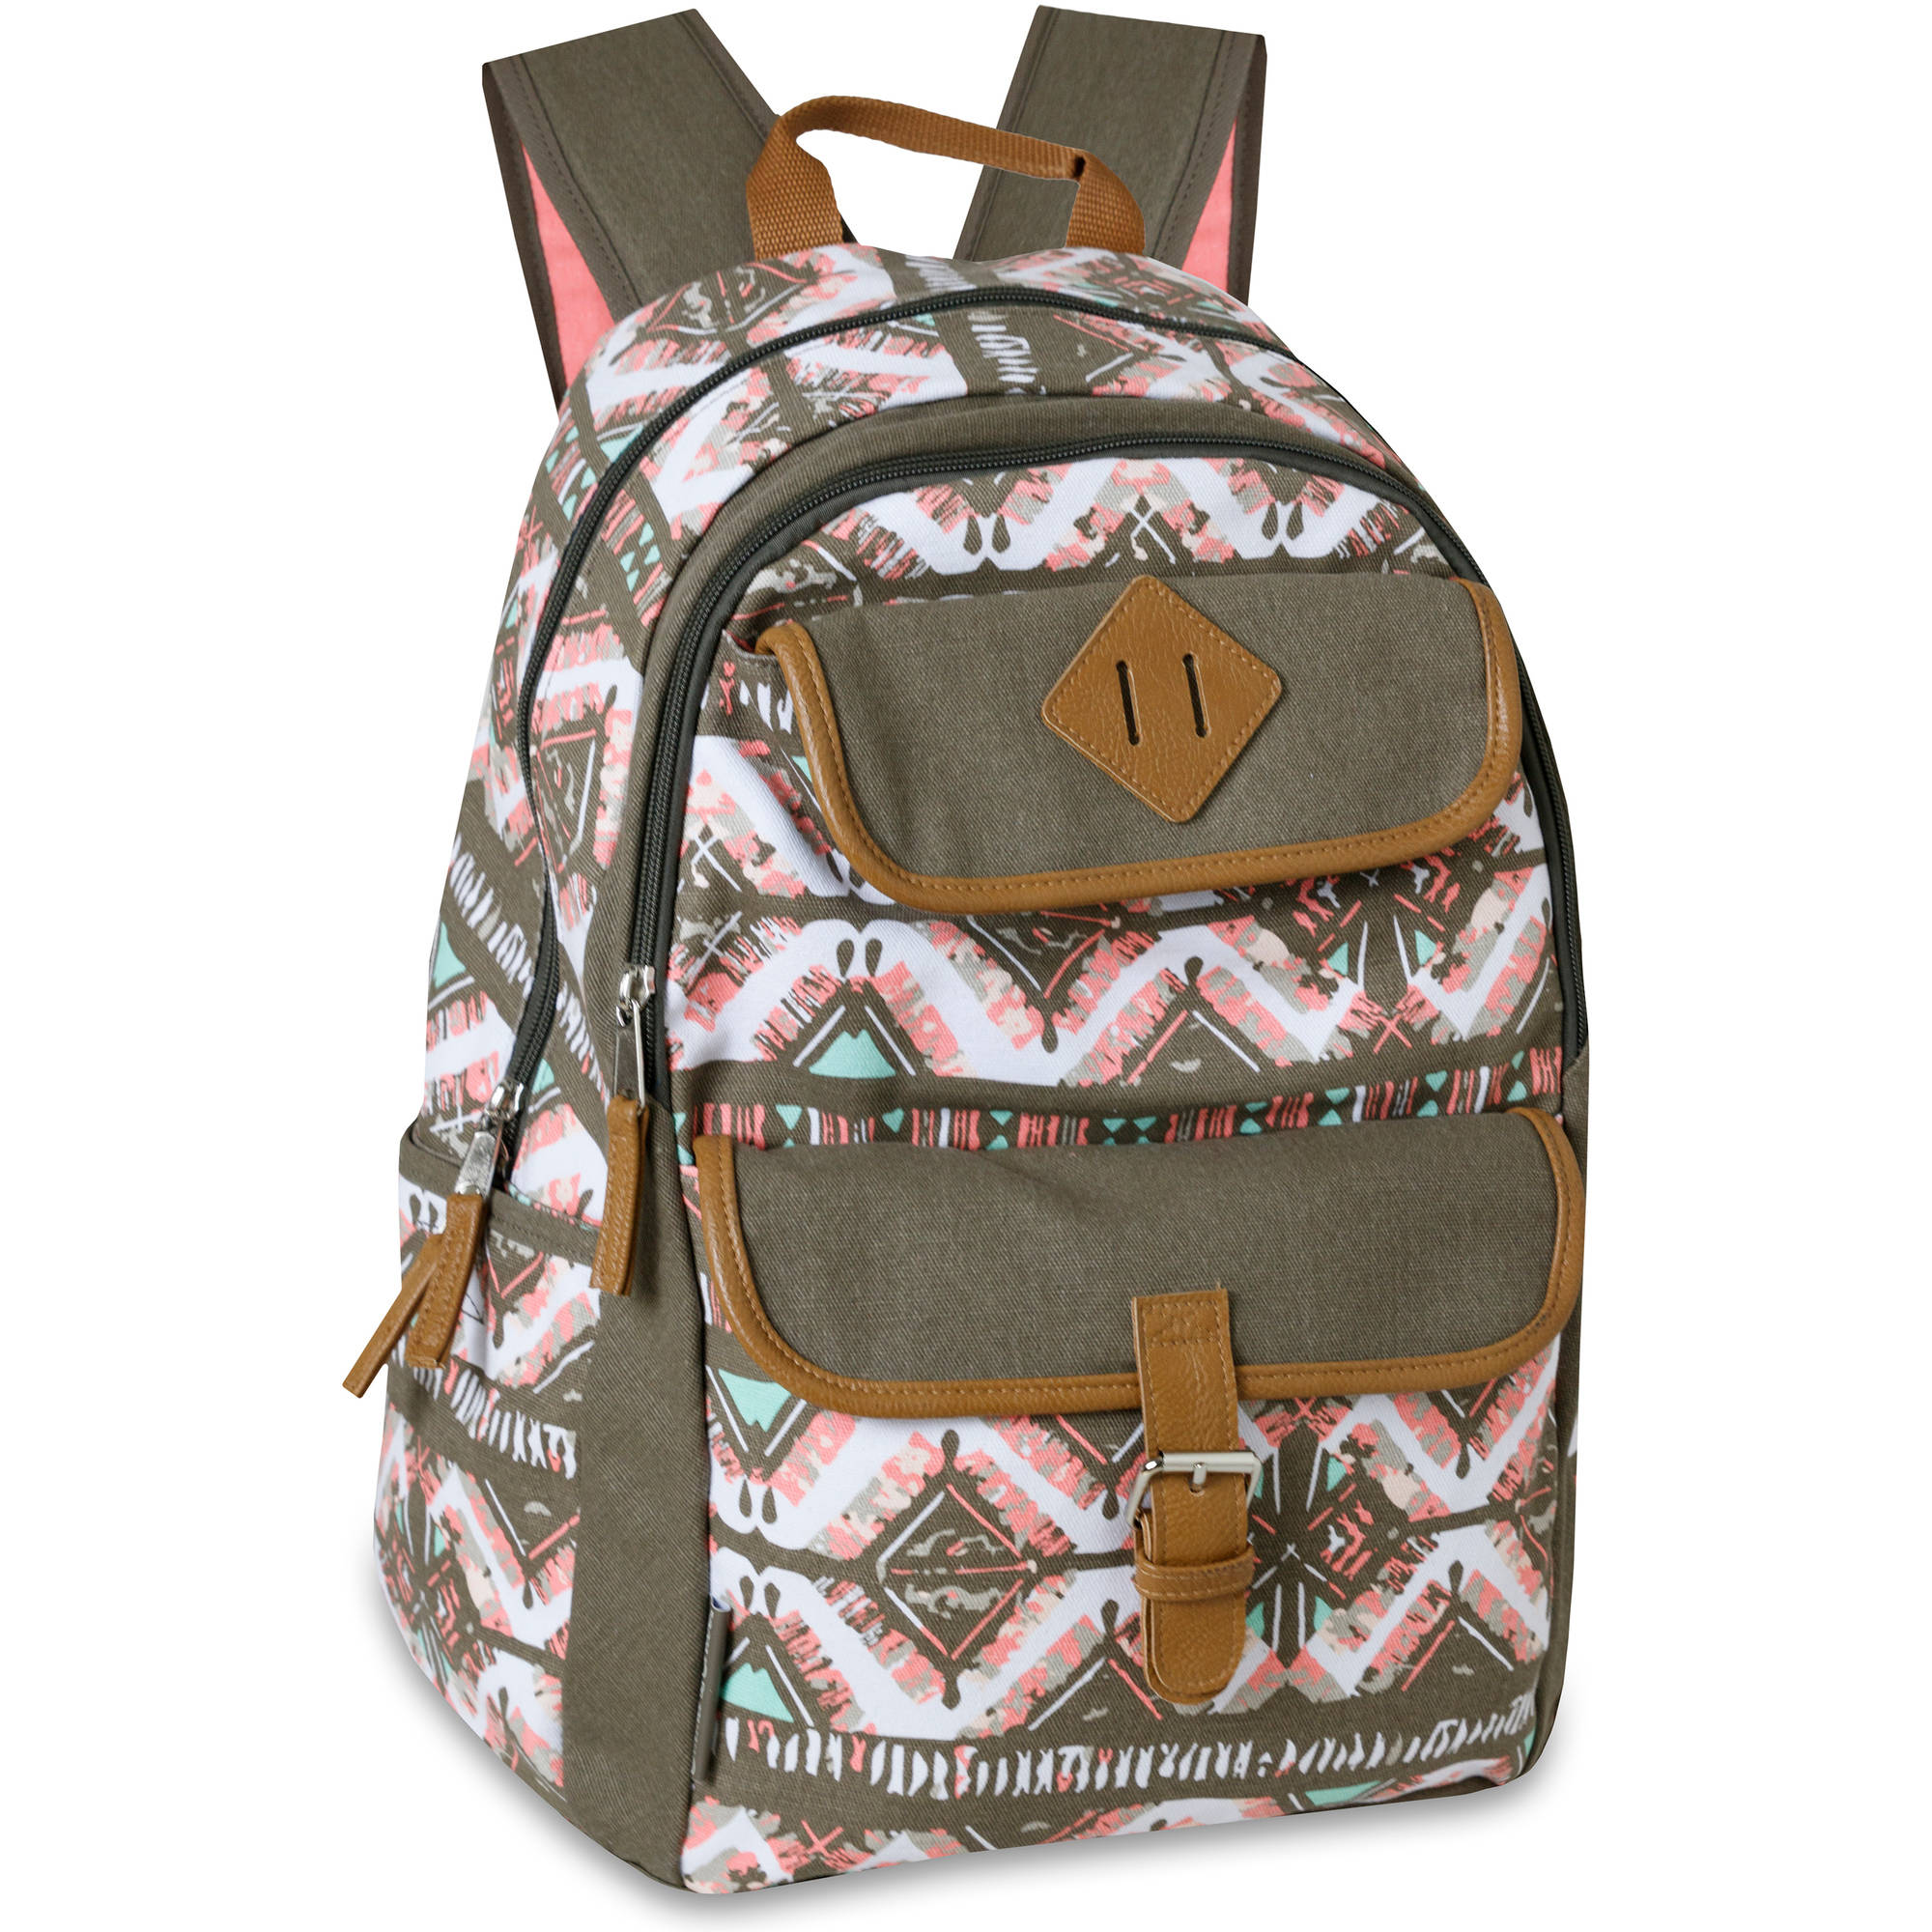 18.5 Inch Deluxe Cotton Canvas Backpack with Vinyl Trim